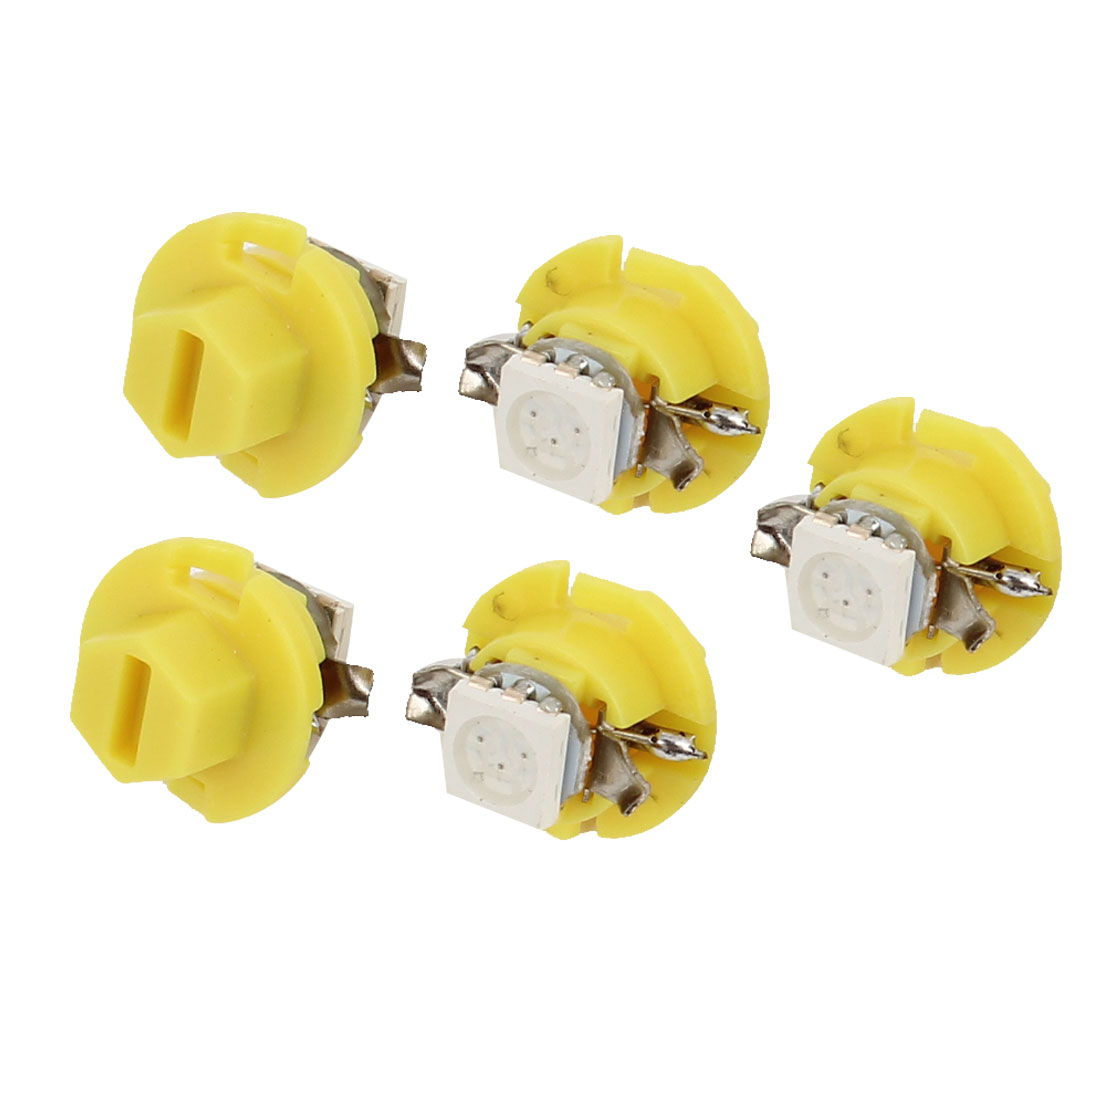 Unique Bargains Yellow B8.4D 5050 SMD 1- Dashboard Vanity Mirror Light Bulb 5 Pcs Internal - image 1 of 1